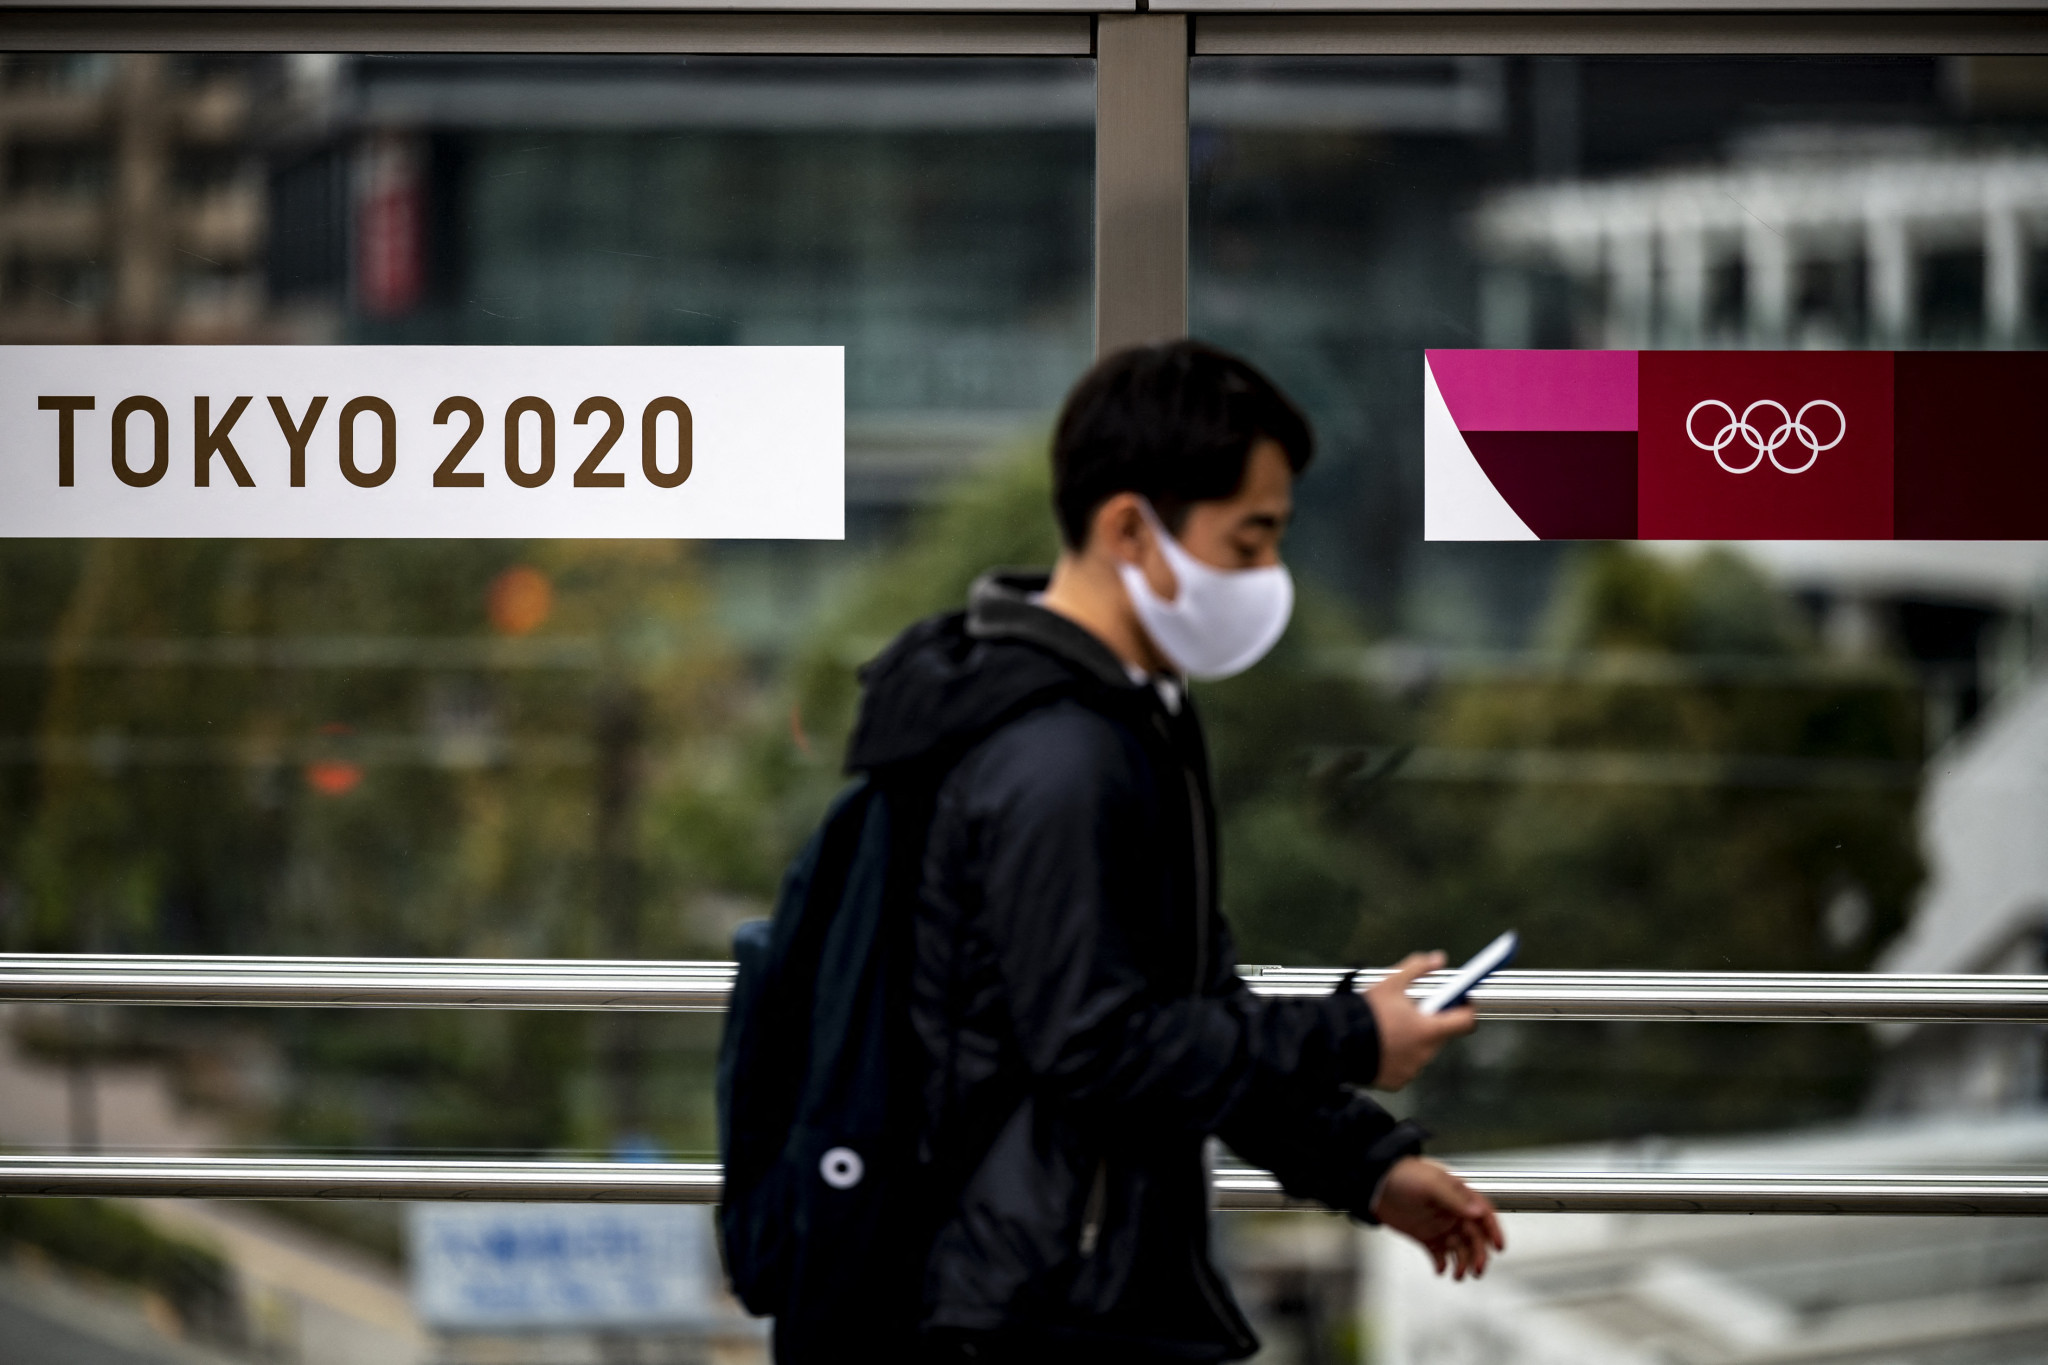 Stricter COVID-19 measures have been introduced this month in Tokyo in an attempt to prevent a further spike in coronavirus cases ©Getty Images